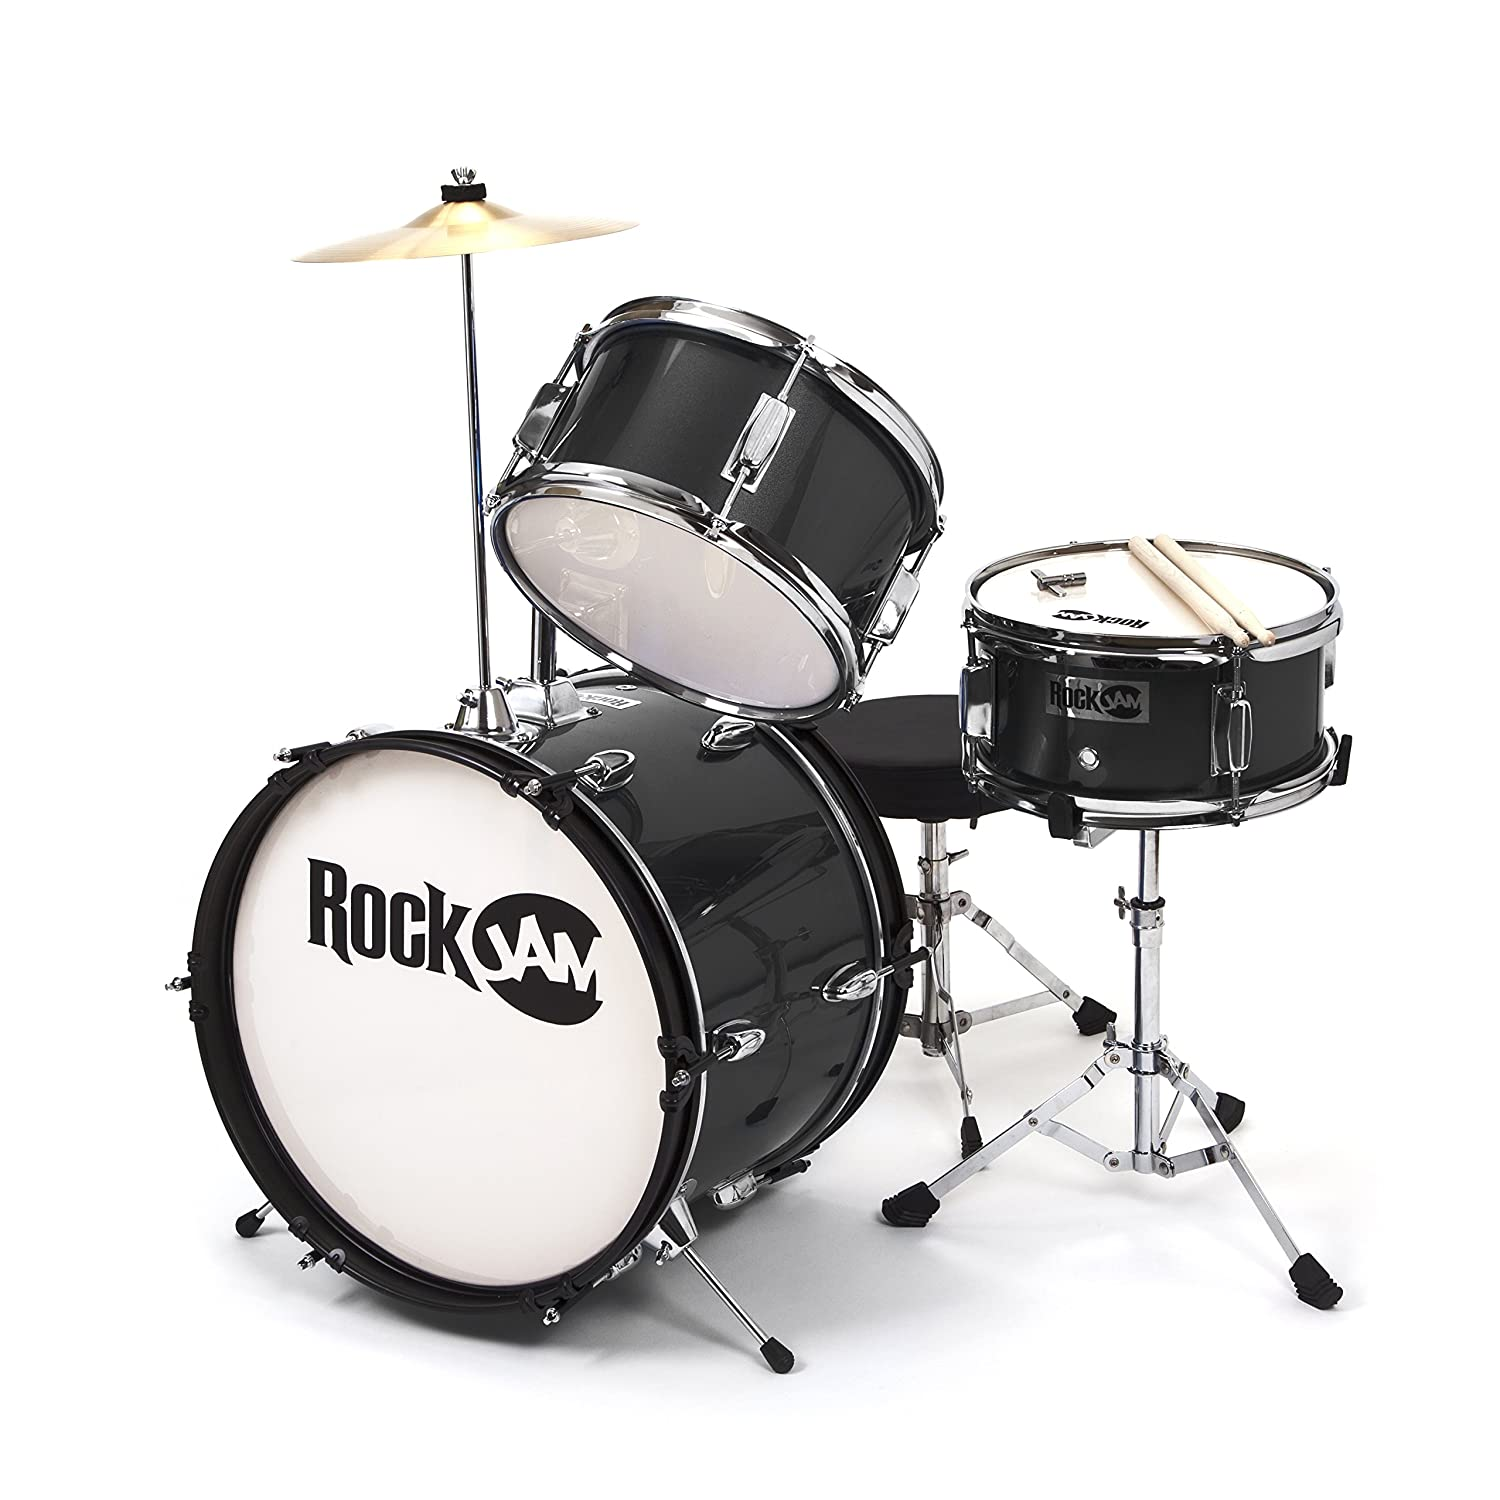 RockJam RJ103-MB 3-Piece Junior Drum Set with Crash Cymbal, Adjustable Throne & Accessories, Metallic Blue PDT Ltd - IMPORT (UK Vendor Product FOB China)